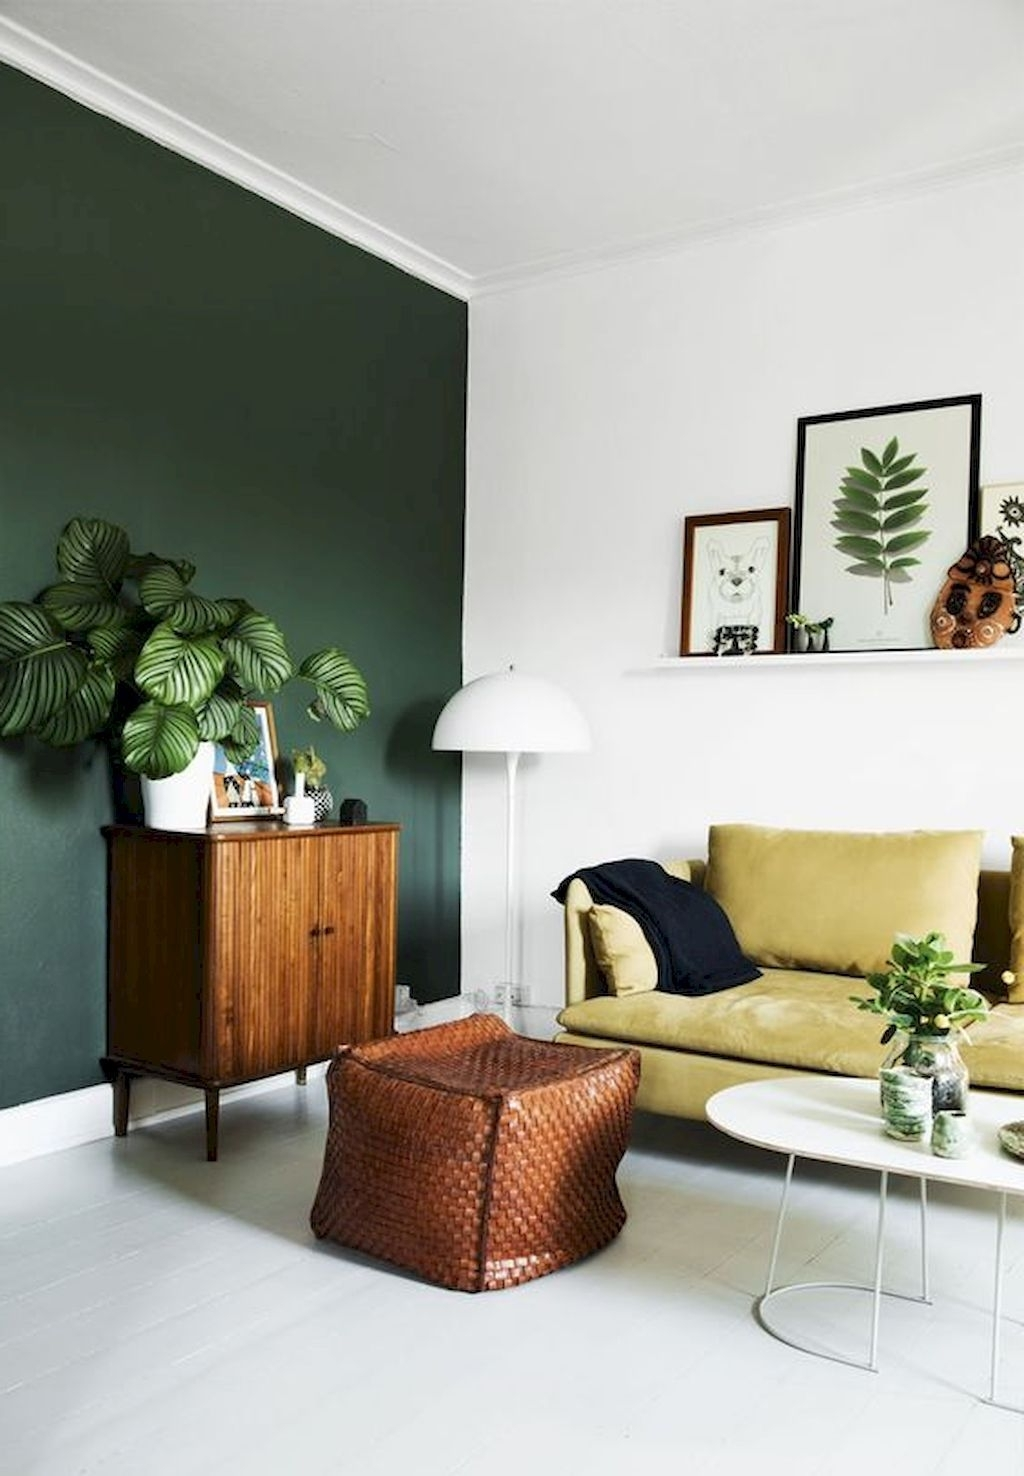 Living Room Design Green: 15 Photos Green Wall Accents